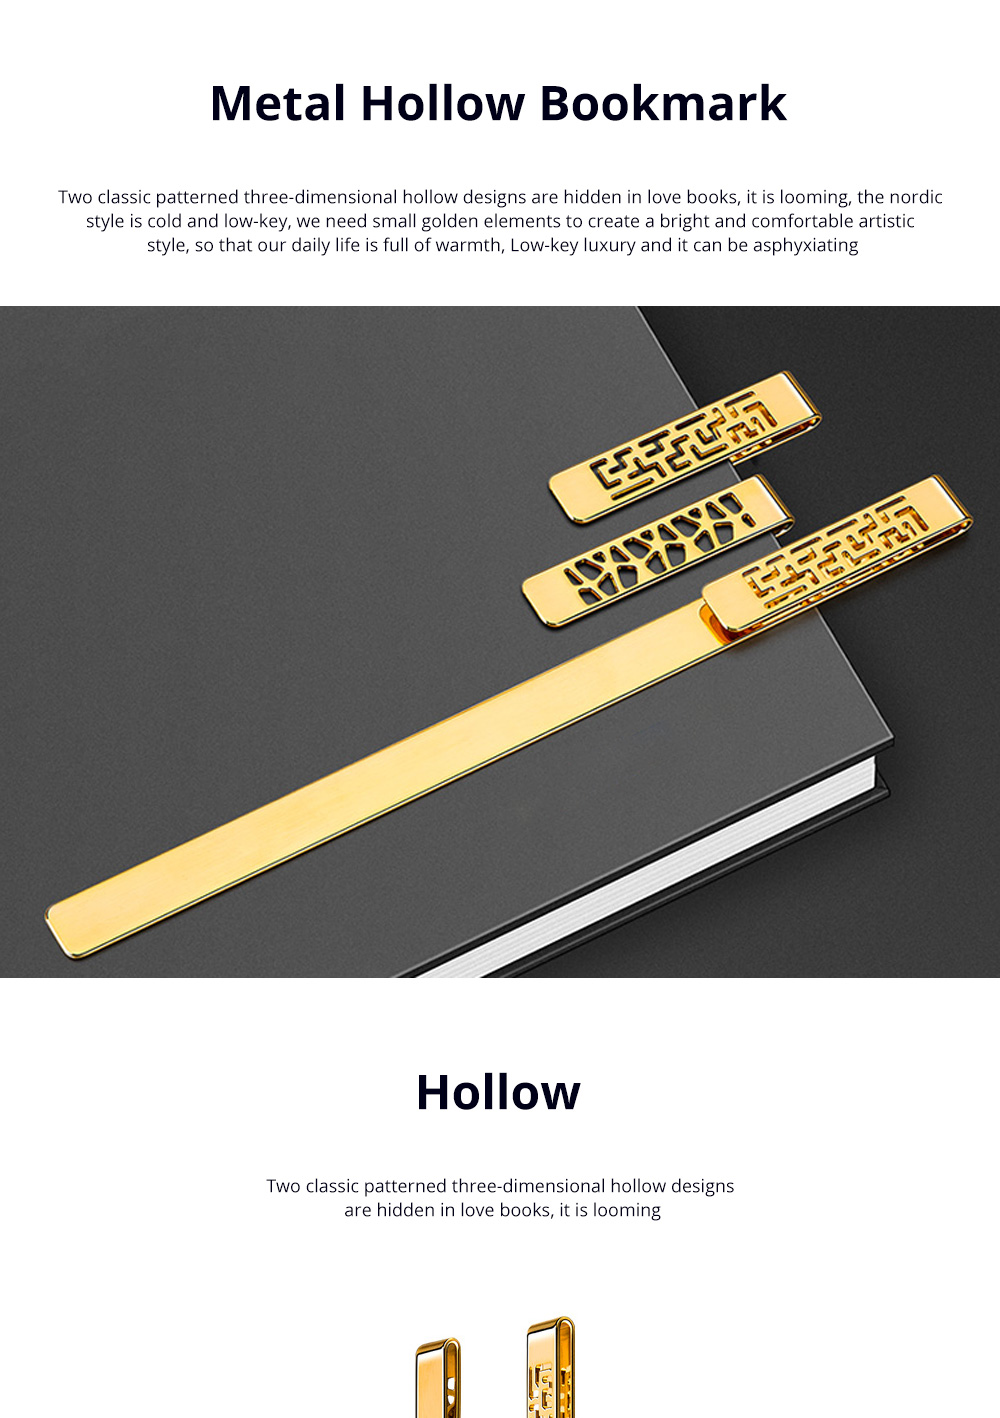 Exquisite Student Stationery Vintage Hollowed Out Traditional Culture Design Brass Metal Bookmark Pack Gift Box 0